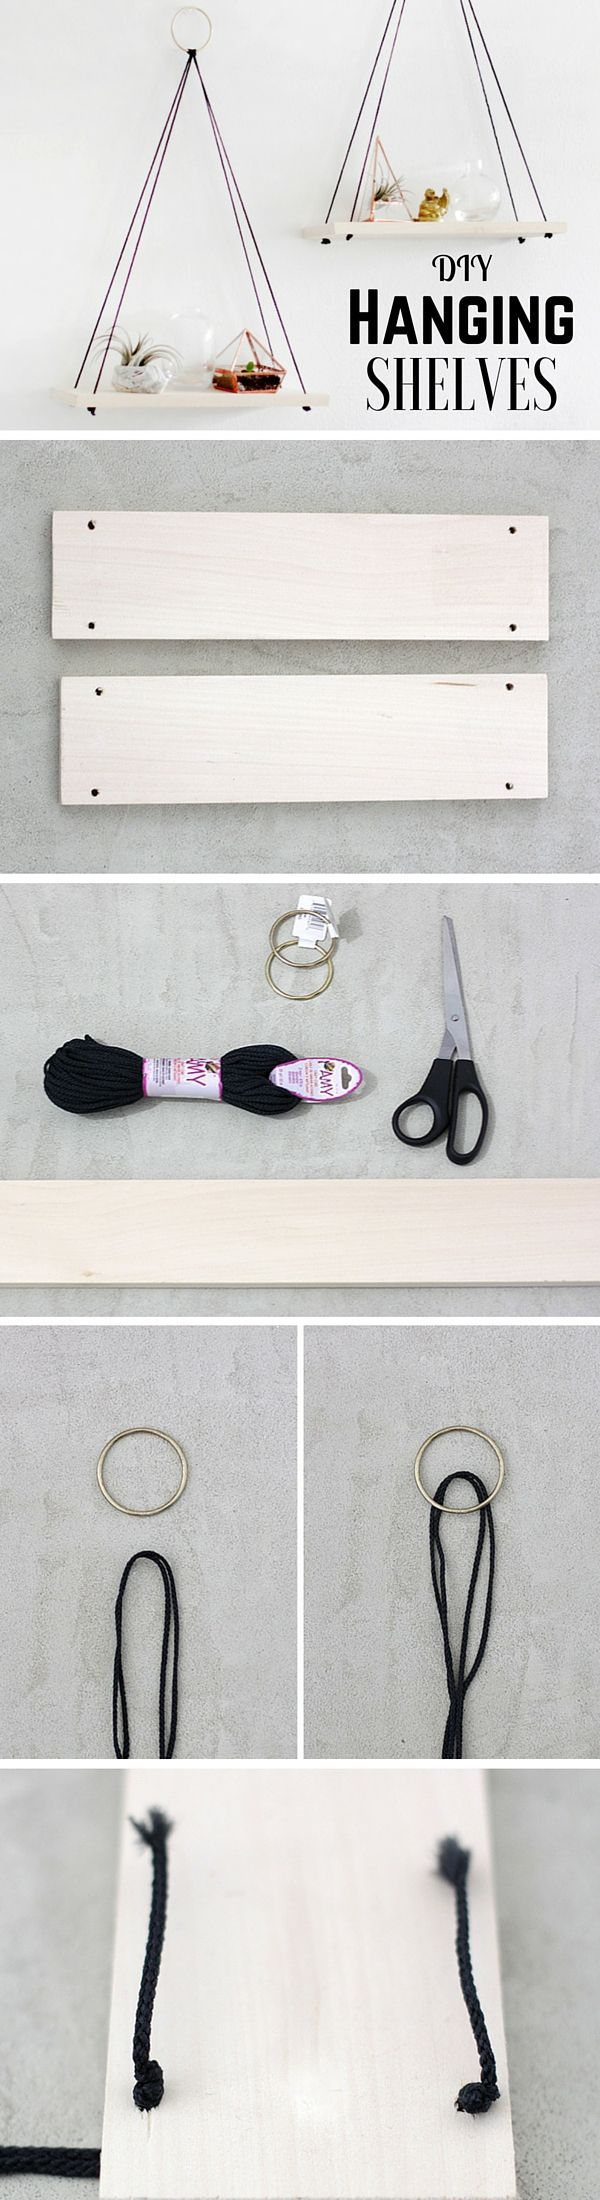 Check out the tutorial: #DIY Hanging Shelves @istandarddesign